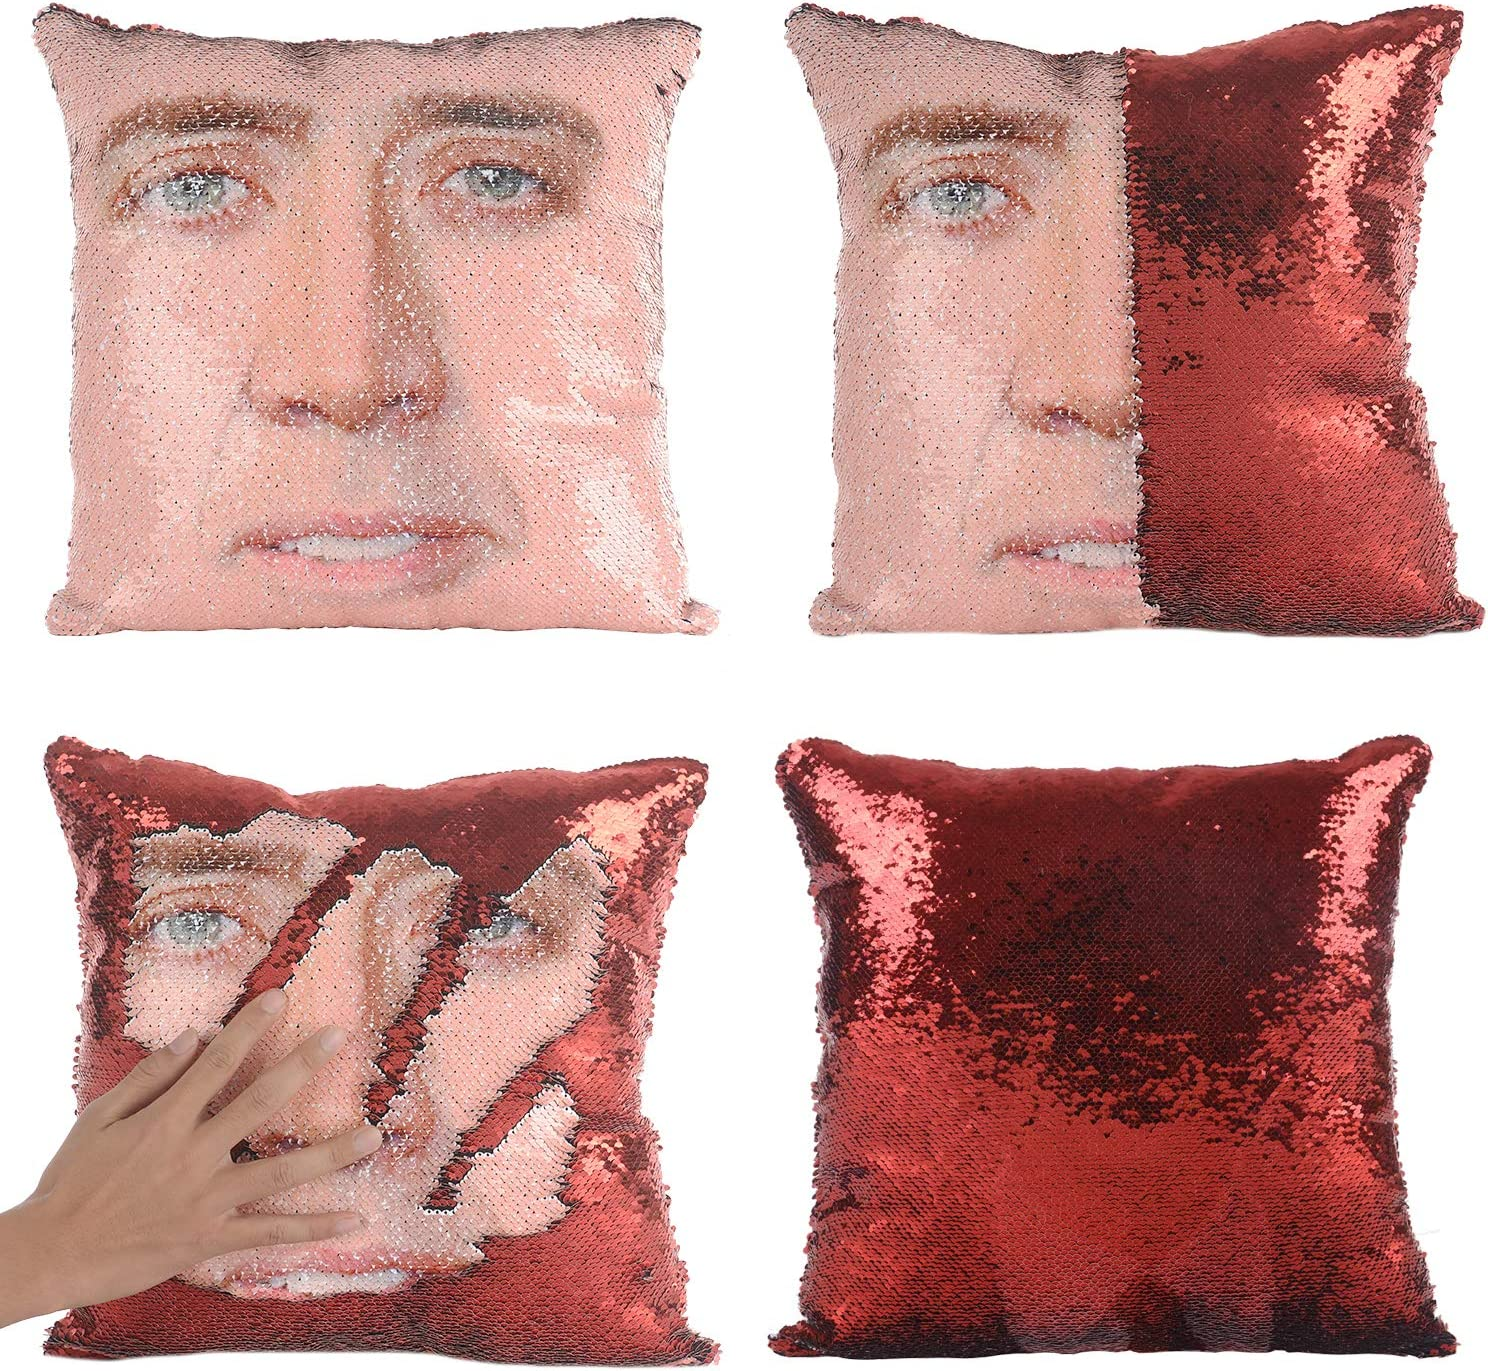 Gift Nicolas Cage Cushion Pillow Cover Case